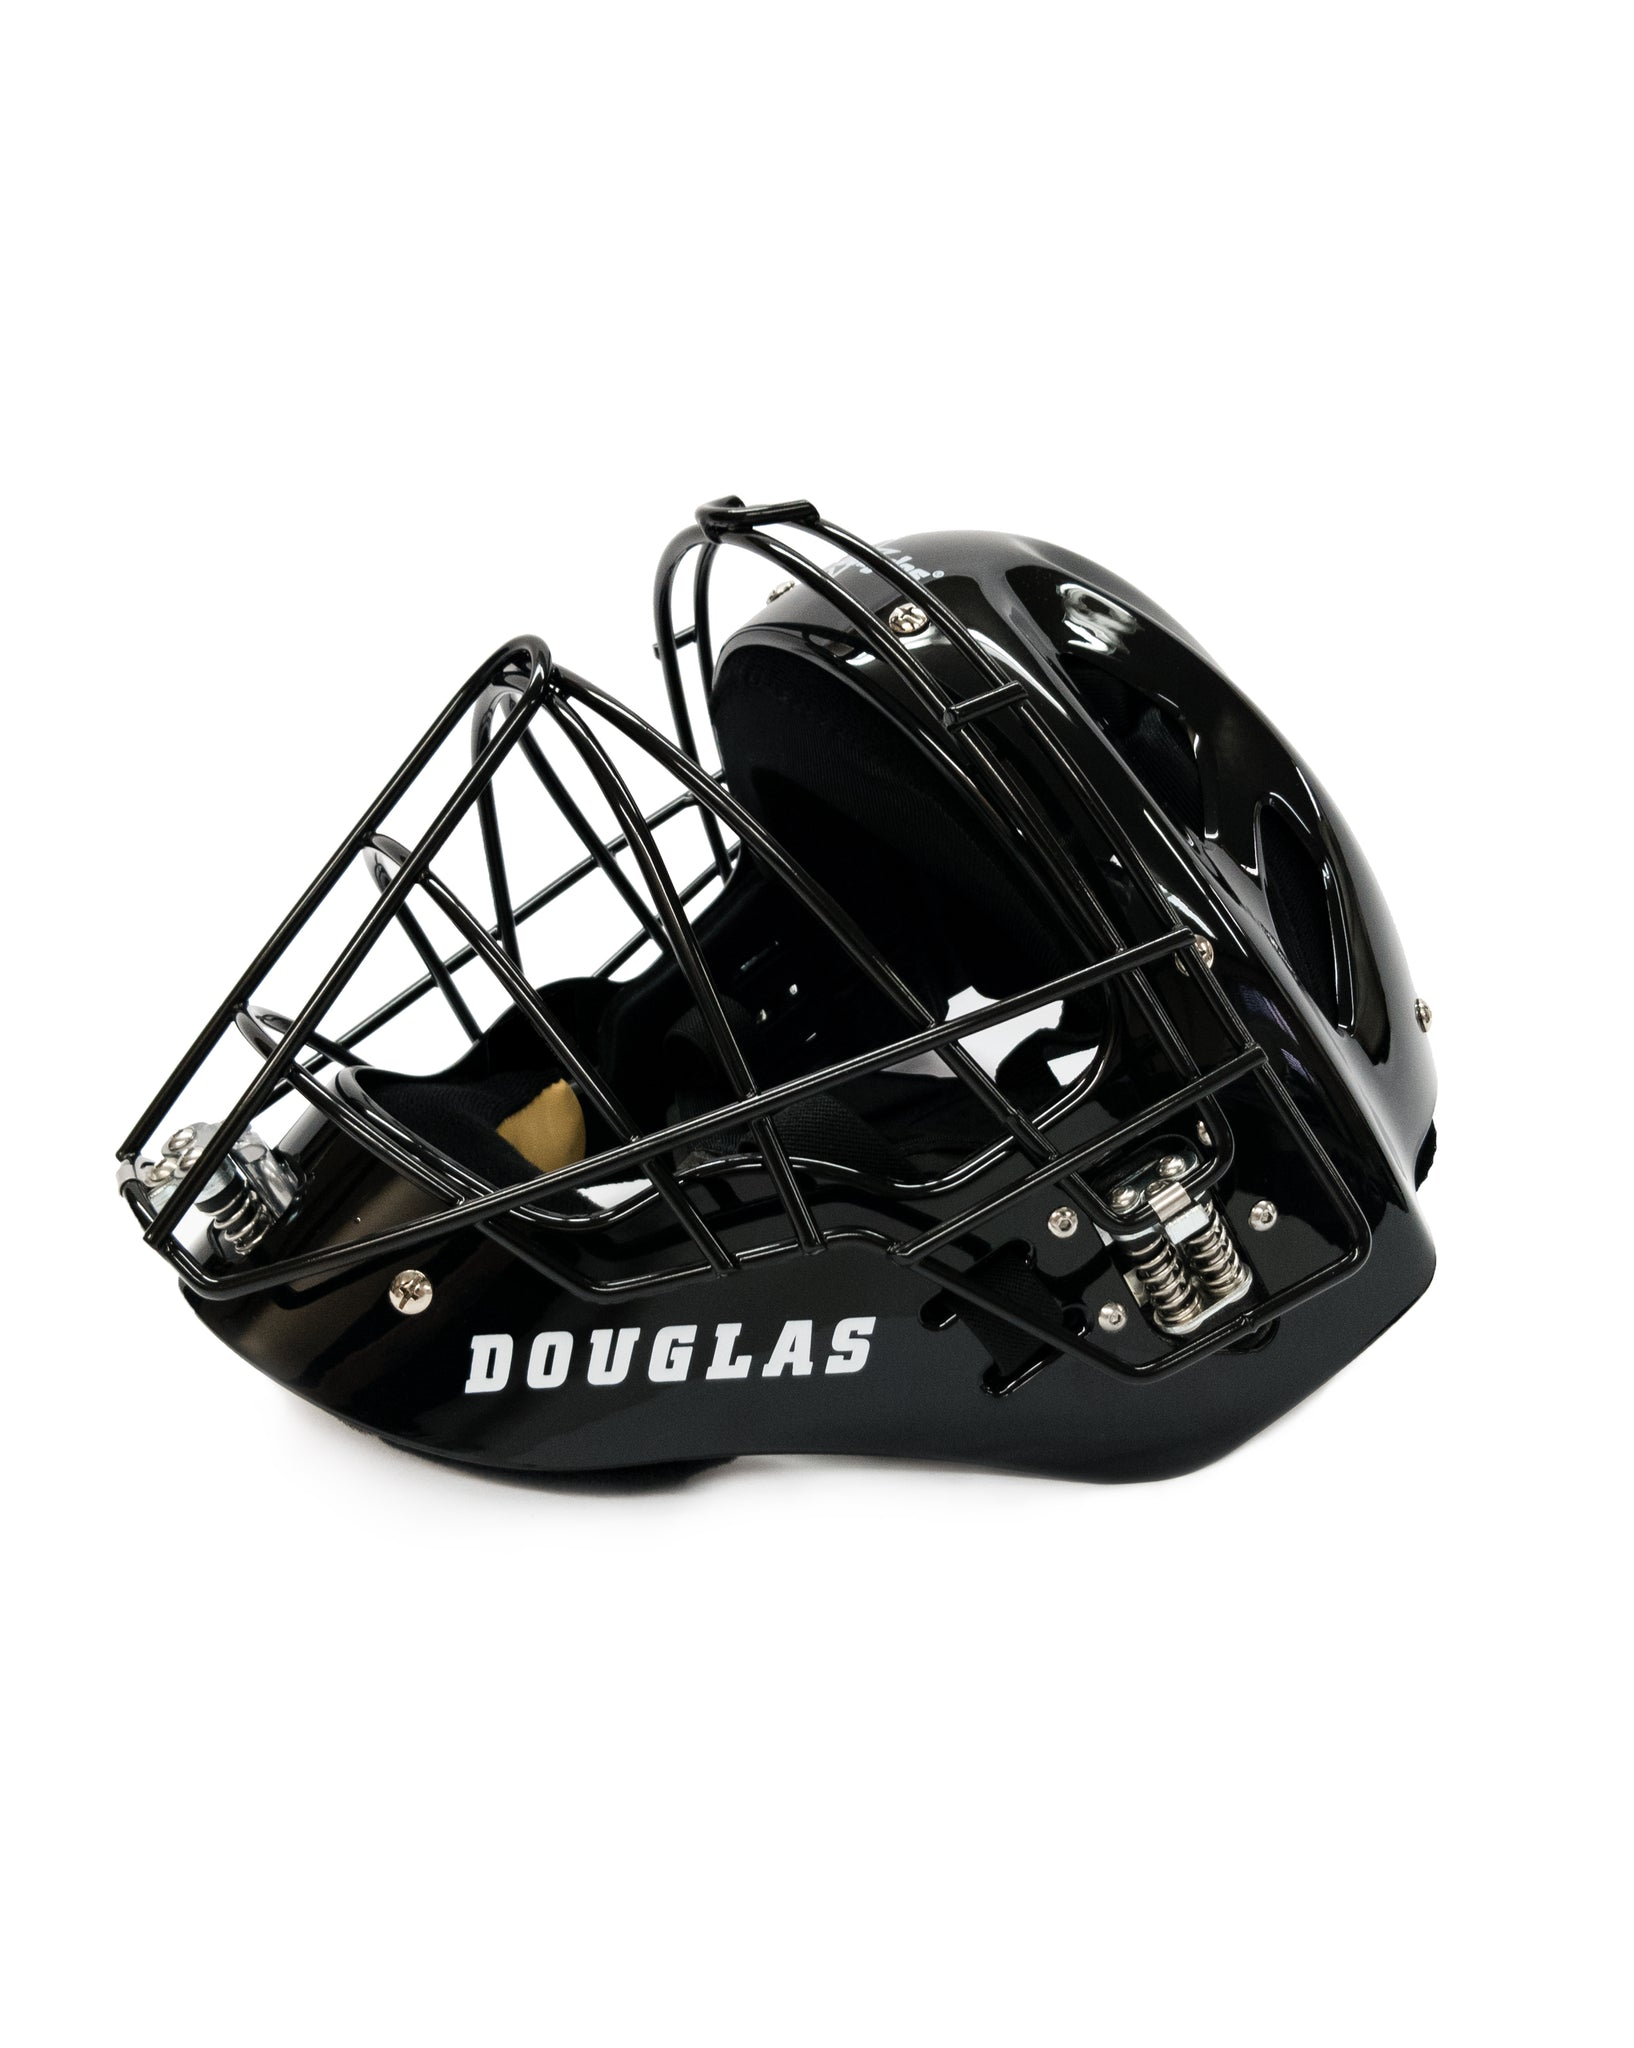 SPE-HFM - Douglas Hockey Style Face Mask with Shock Suspension System (S3)